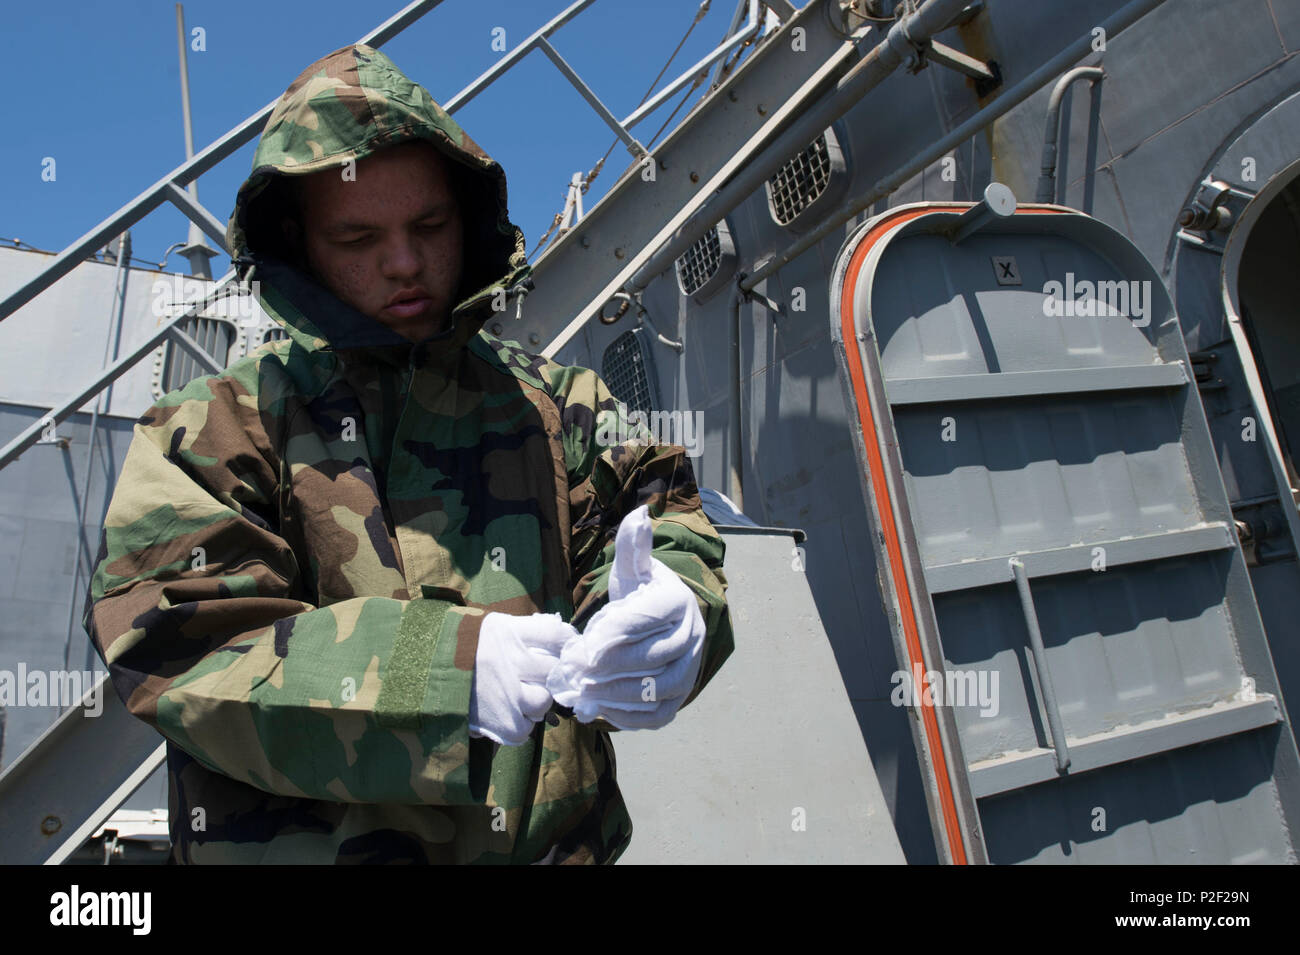 160905-N-ZE250-069   MEDITERRANEAN SEA (Sept. 05, 2016) - Seaman Christopher Longval dons a Joint Service Lightweight Integrated Suit Technology overgarment during a mission oriented protective posture exercise aboard USS Carney (DDG 64)  in the Mediterranean Sea Sept. 5, 2016. Carney, an Arleigh Burke-class guided-missile destroyer, forward-deployed to Rota, Spain, is conducting a routine patrol in the U.S. 6th fleet area of operations in support of U.S. national security interests in Europe. (U.S. Navy photo by Mass Communication Specialist 3rd Class Weston Jones/Released) - Stock Image